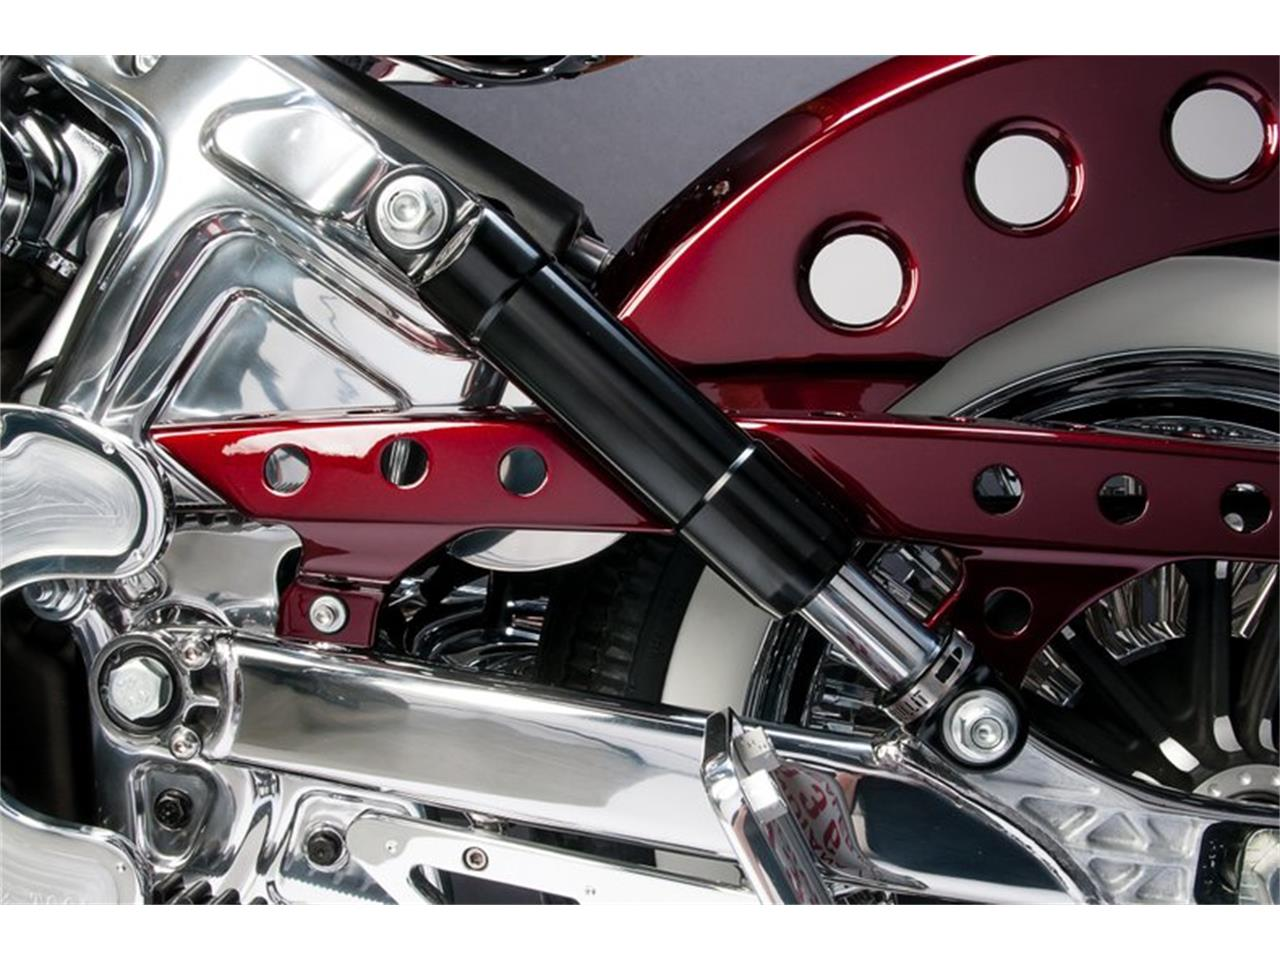 2016 Indian Scout (CC-1161914) for sale in Elkhart, Indiana